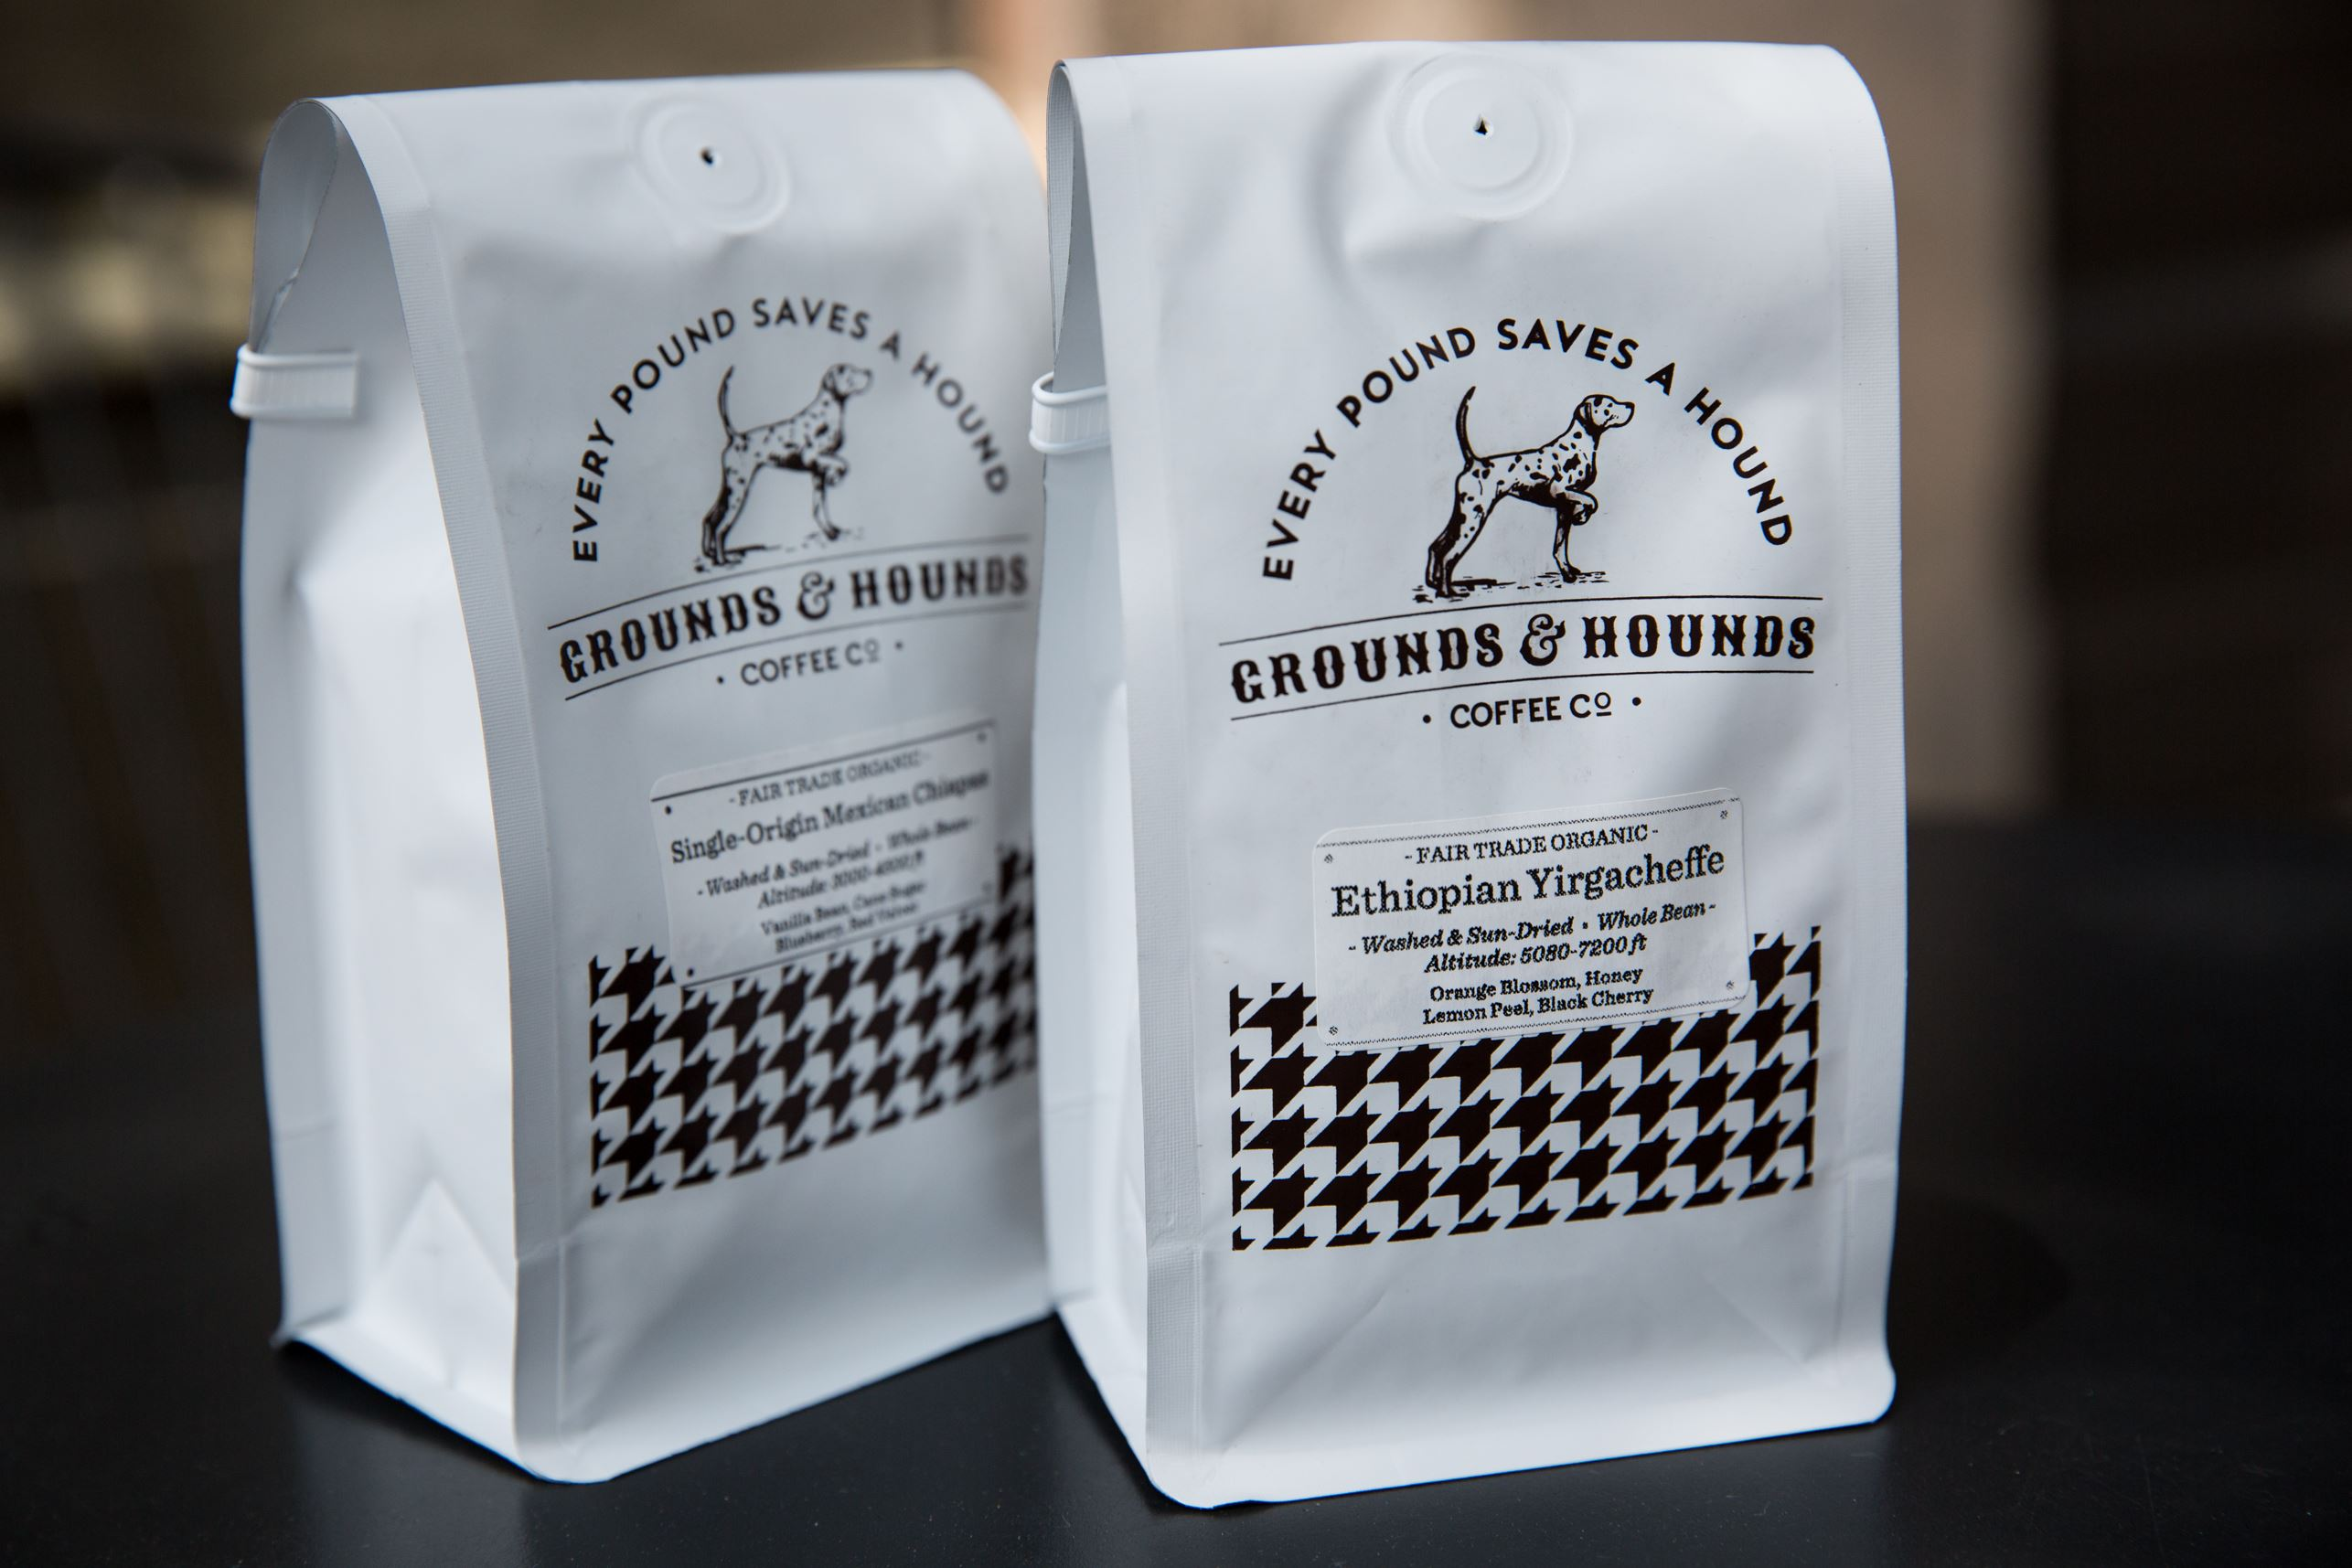 20170629adGrounds-Hounds-03 Molly graces the packaging of the coffee from Grounds & Hounds. The company, owned by Jordan Karcher, sells fair trade and organic coffee beans, and 20 percent of the proceeds go to supporting animal rescue organizations around the country.